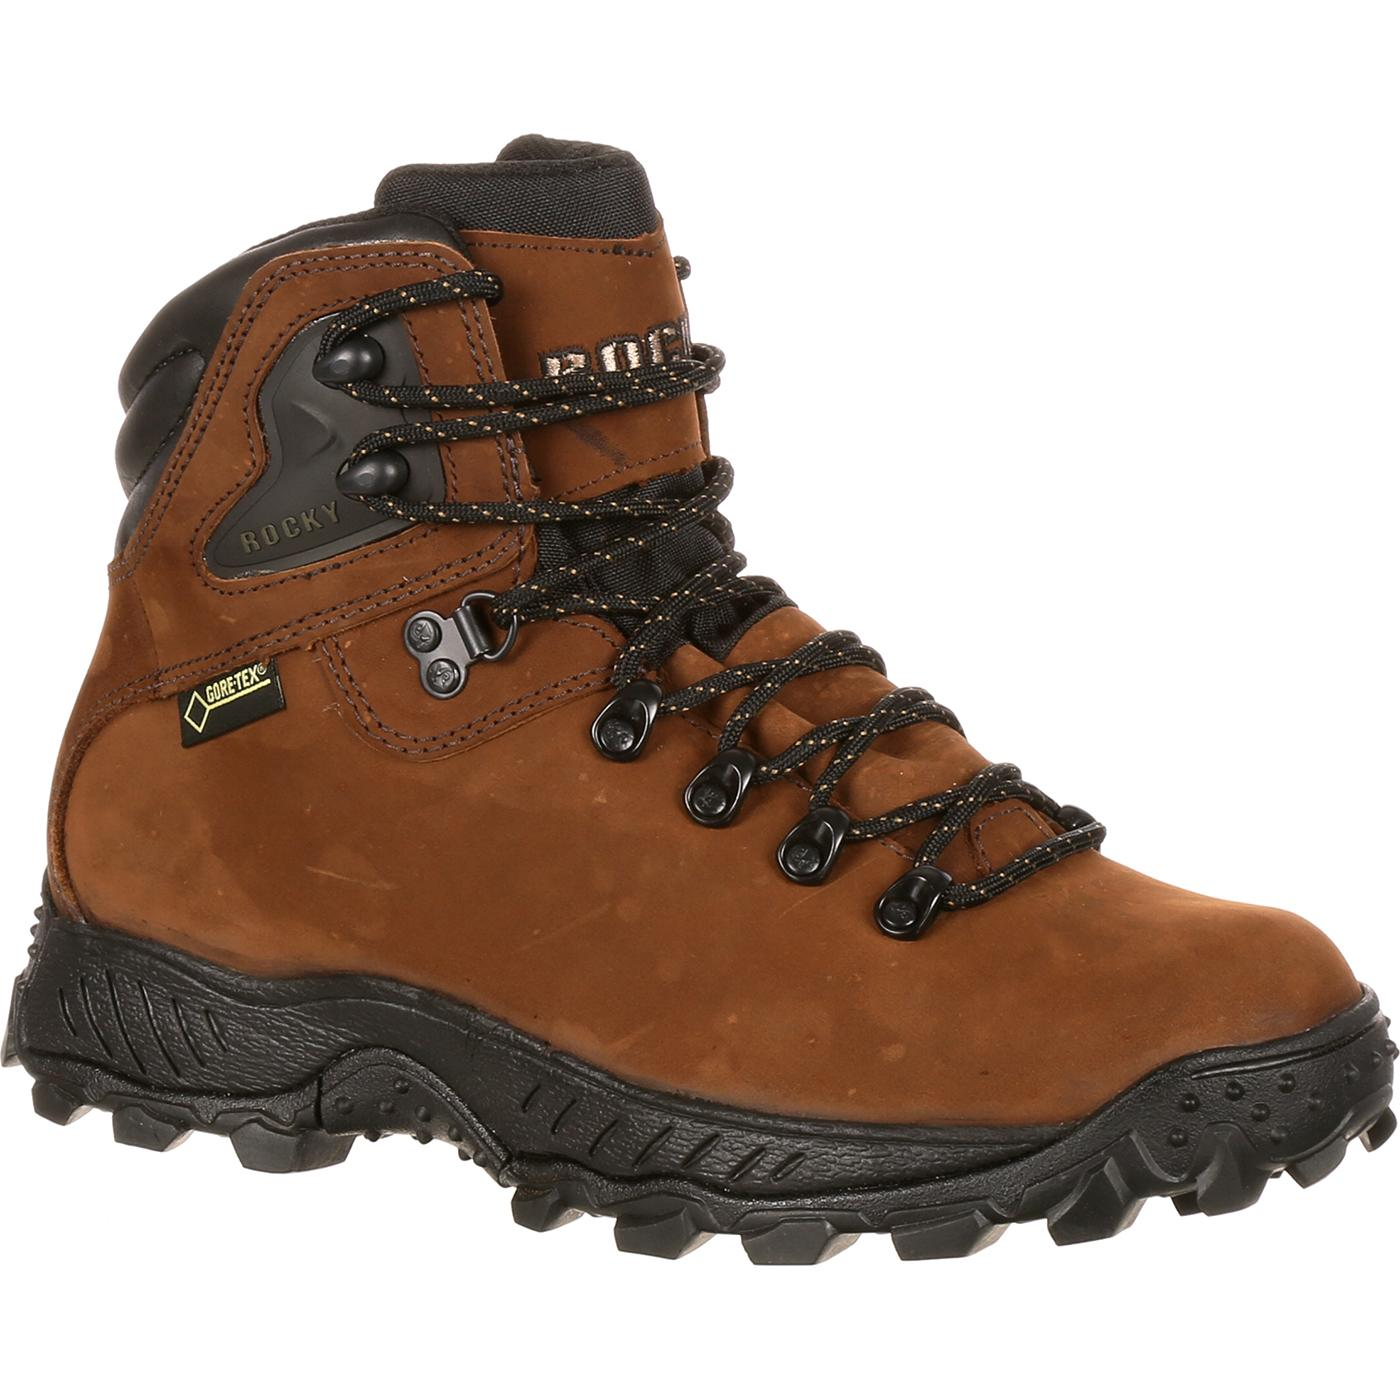 Rocky Hiking Boots - Hit the trails